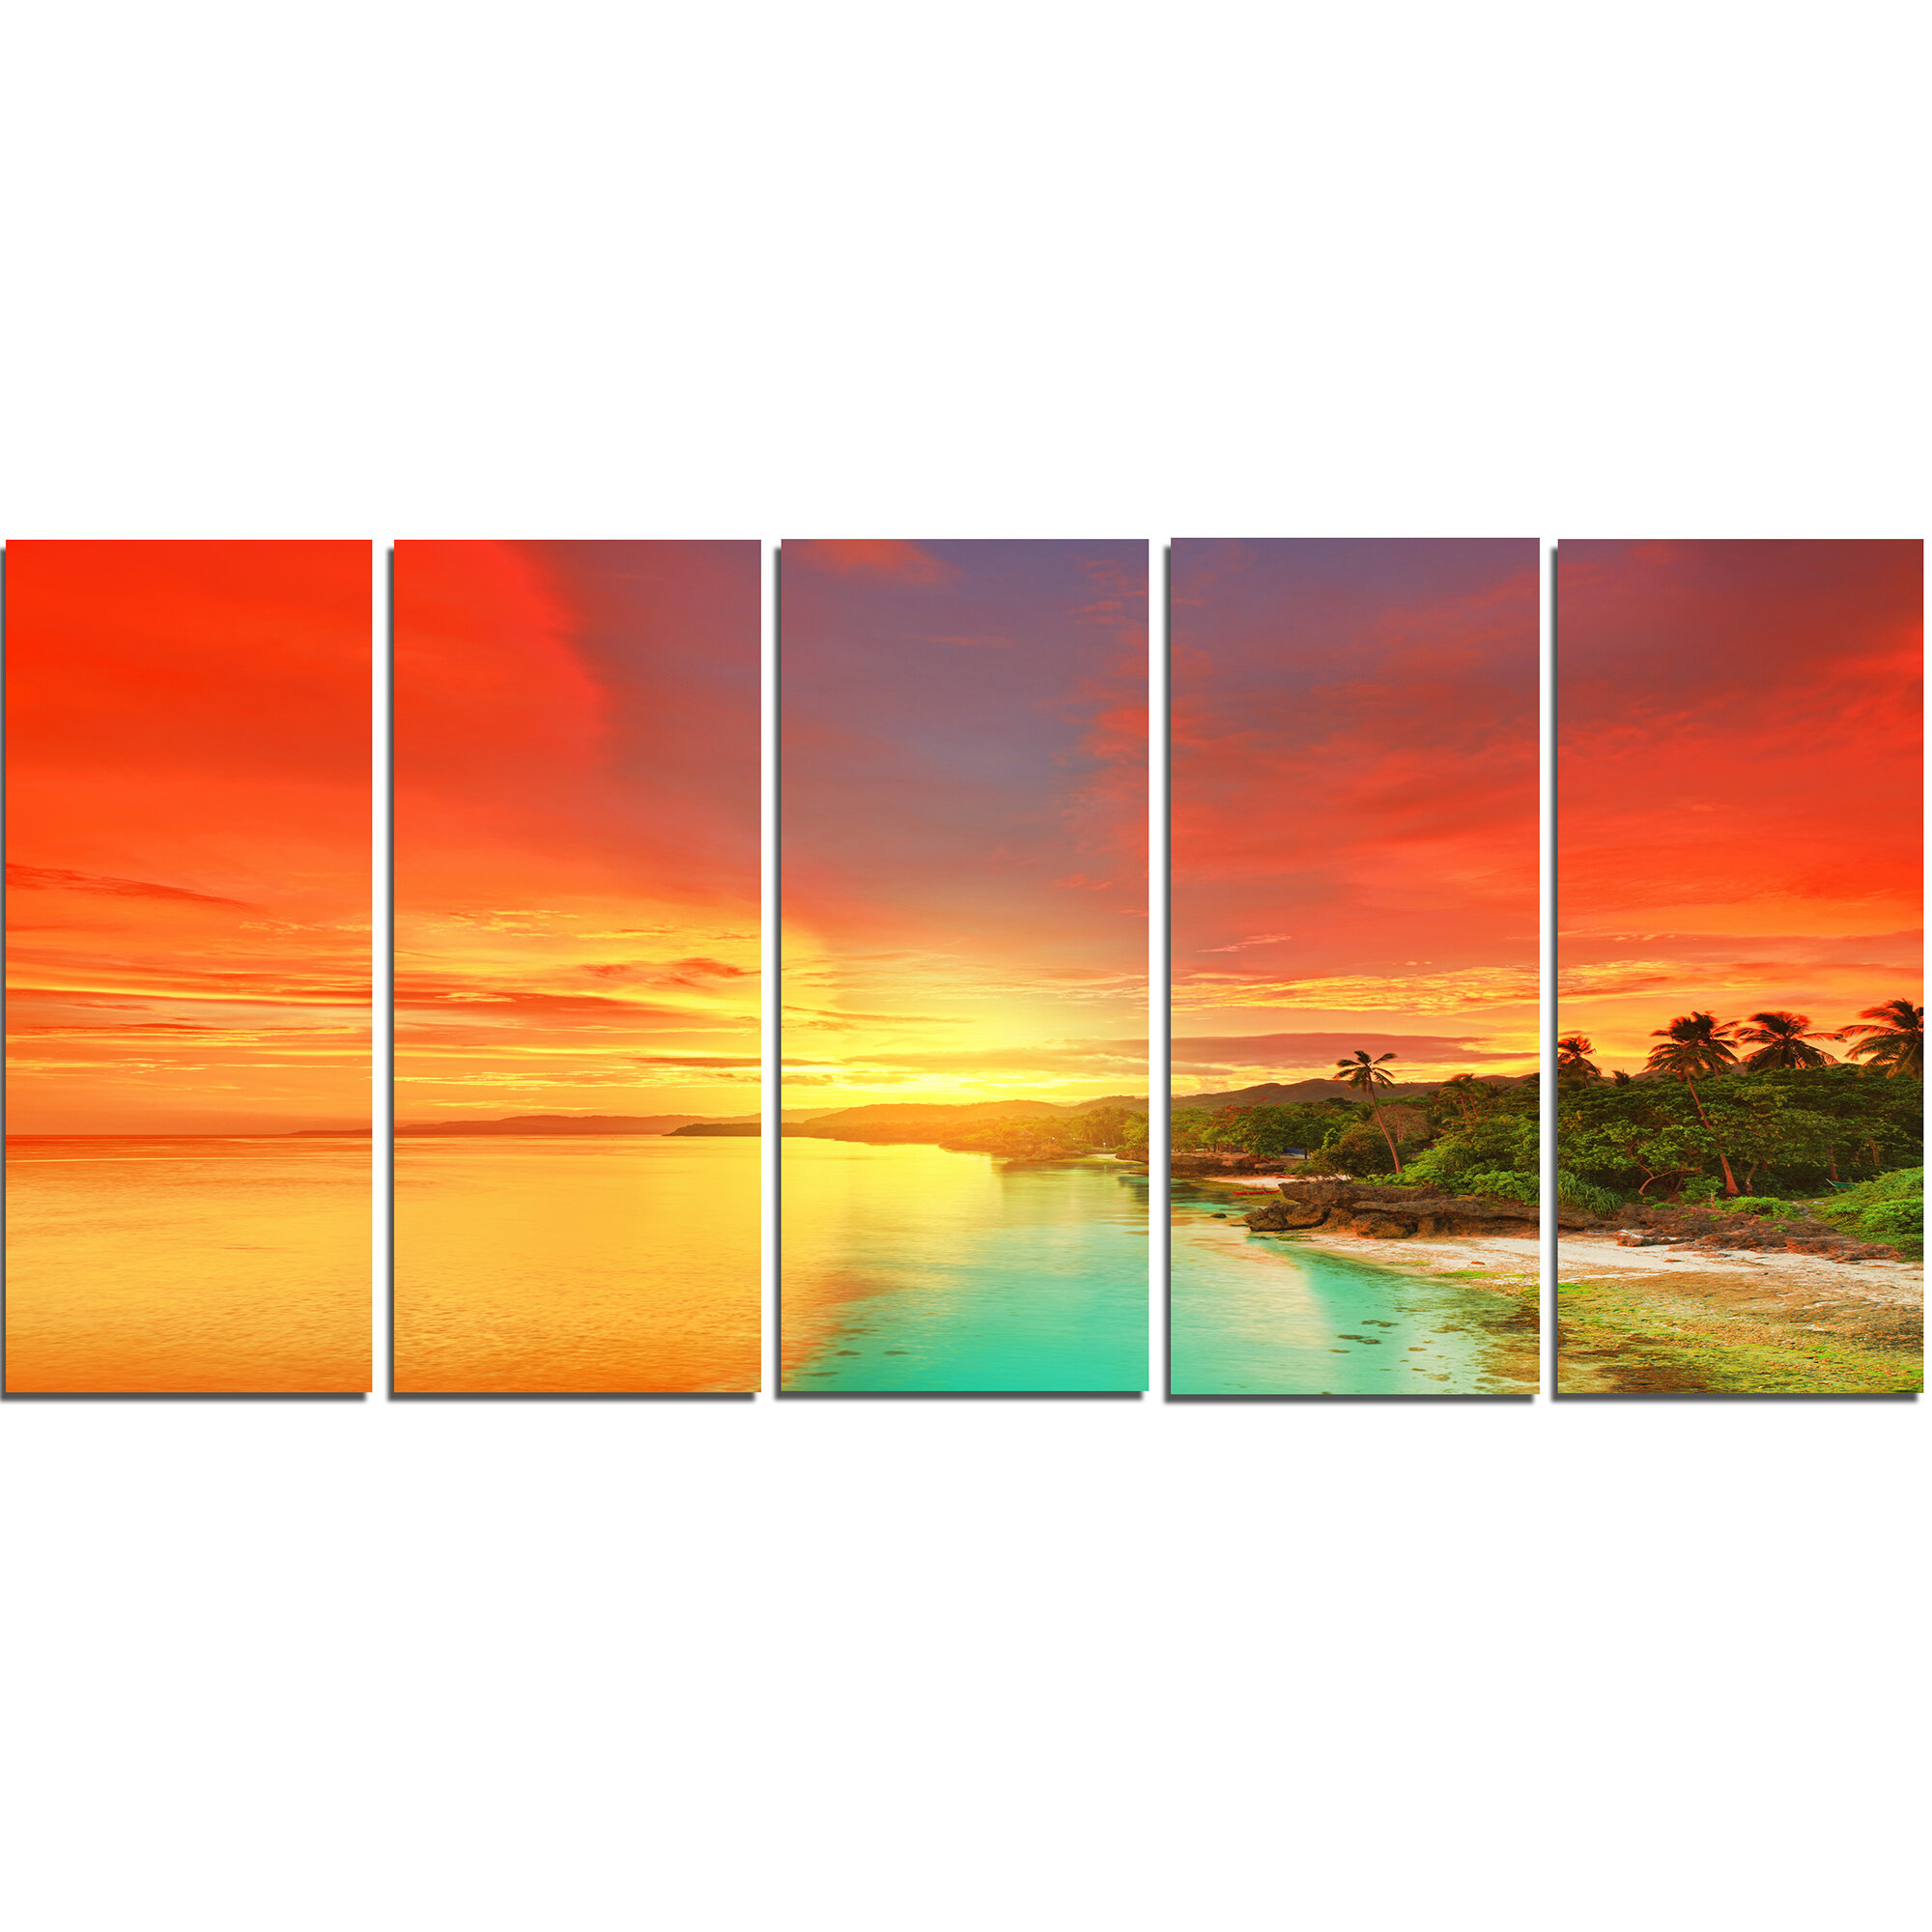 Designart Beautiful Coastline In Philippines 5 Piece Wall Art On Wrapped Canvas Set Wayfair